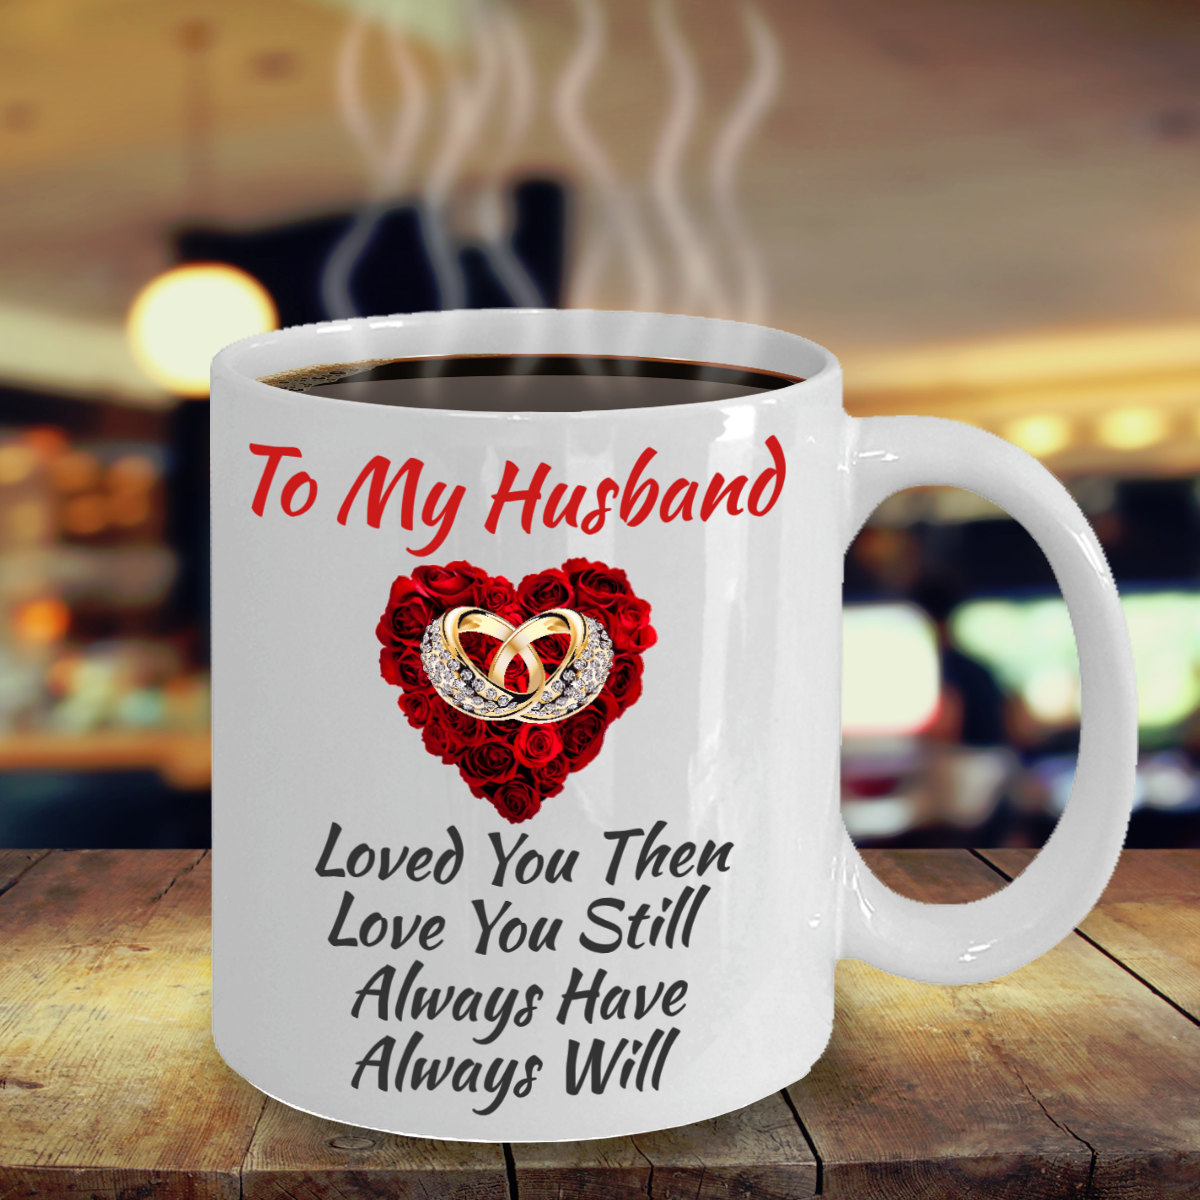 Anniversary Birthday Gifts For Husband Men And 50 Similar Items Il Fullxfull1146495904 Fhvc